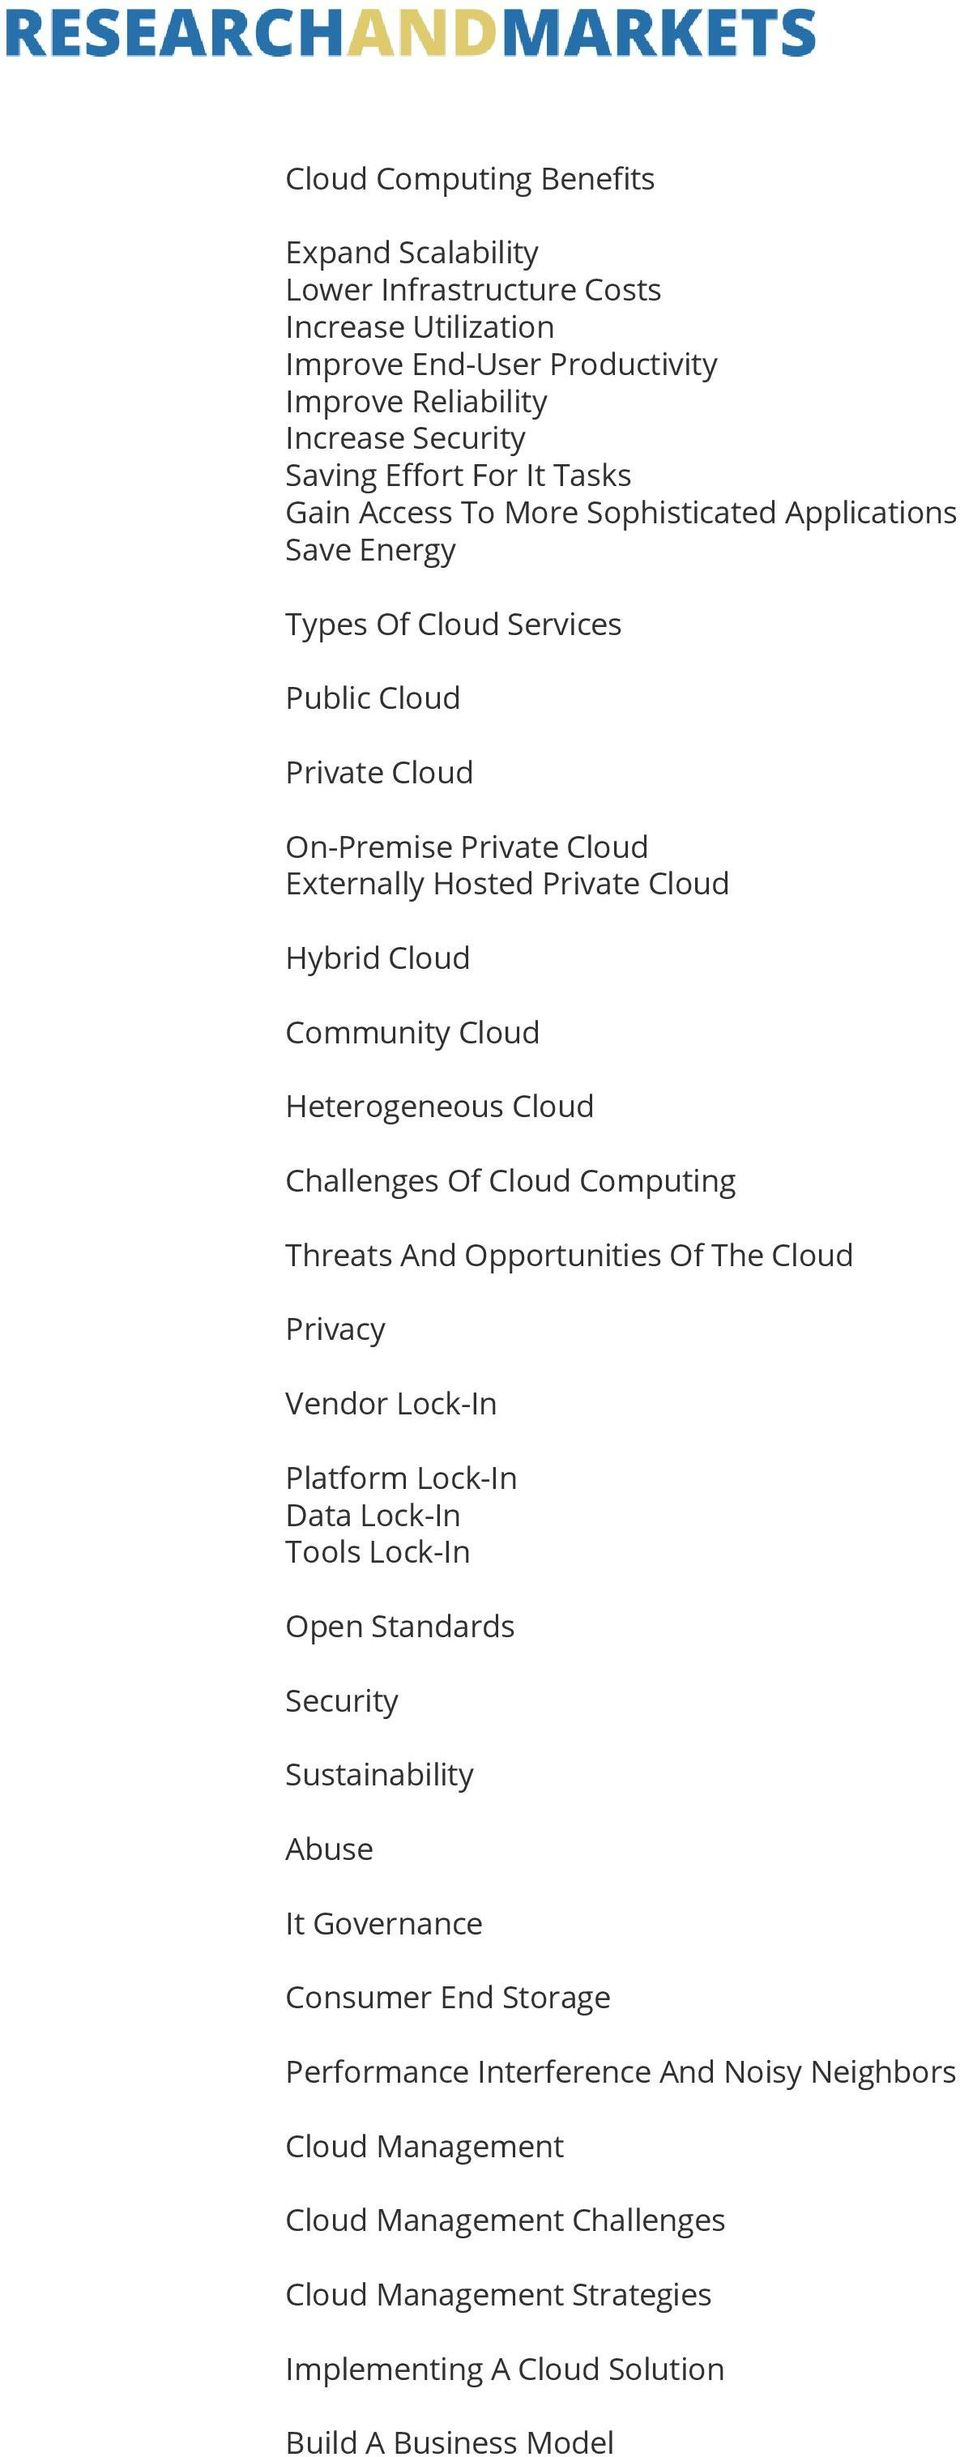 Heterogeneous Cloud Challenges Of Cloud Computing Threats And Opportunities Of The Cloud Privacy Vendor Lock-In Platform Lock-In Data Lock-In Tools Lock-In Open Standards Security Sustainability